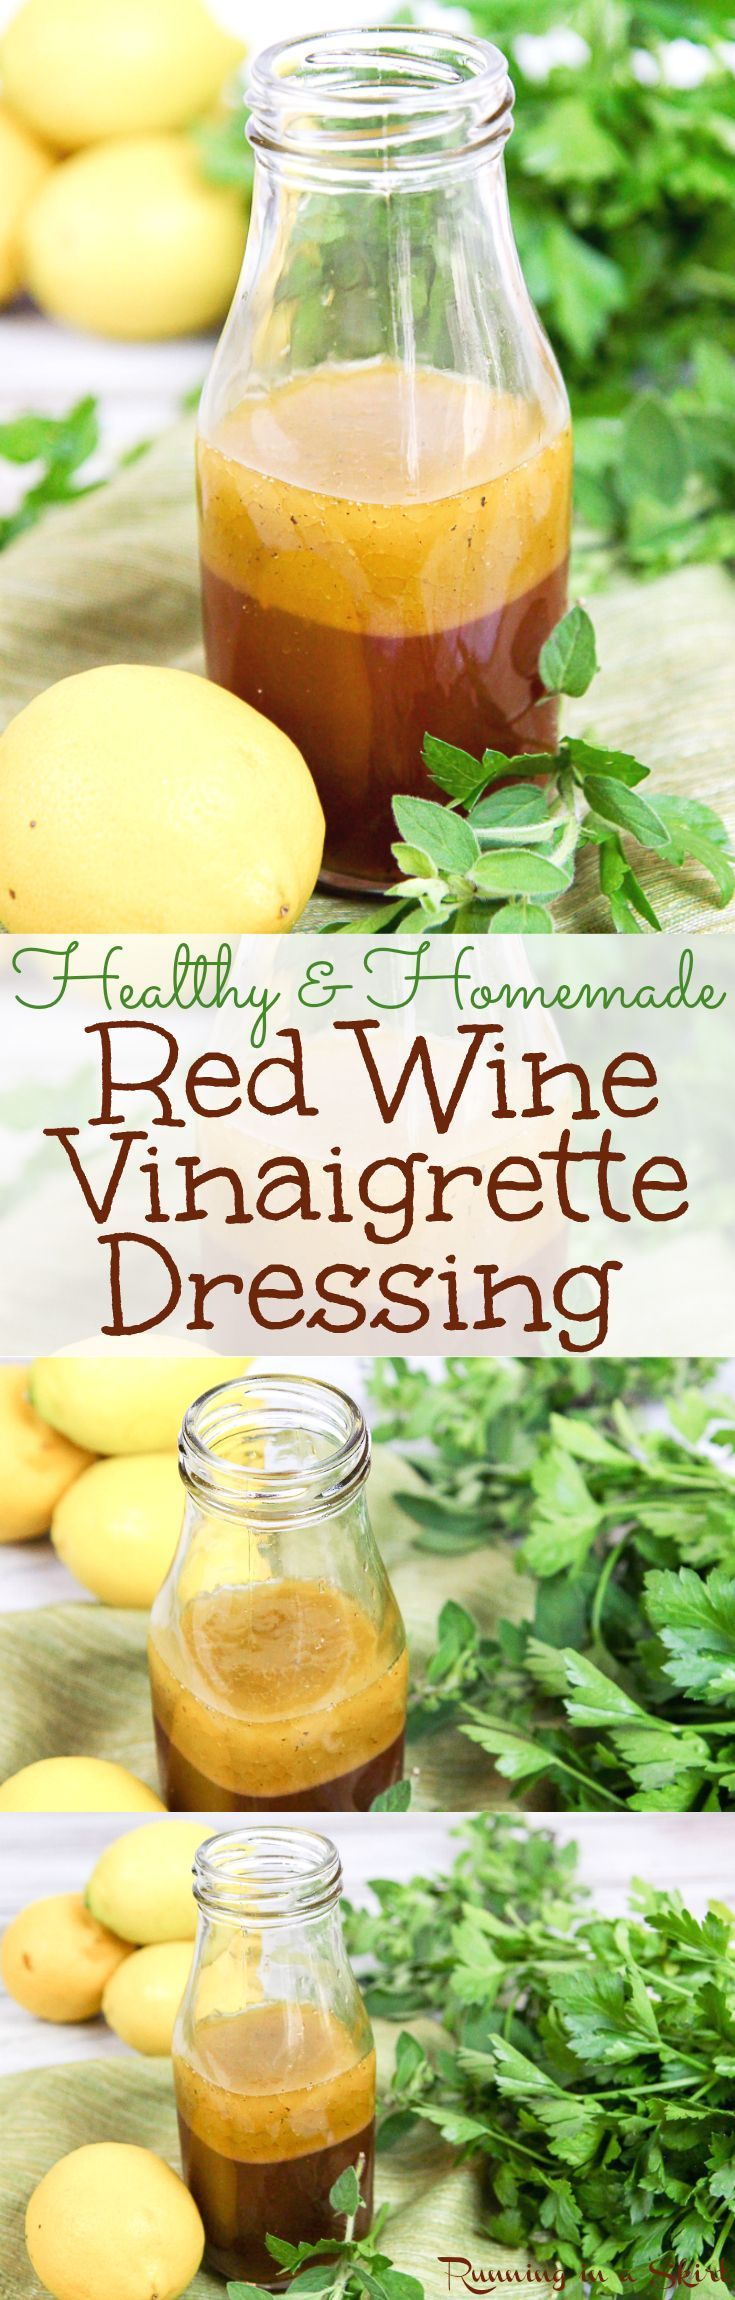 The Best Healthy Homemade Red Wine Vinaigrette dressing recipe. A simple, no sugar salad dressing recipe. Easy, simple, gluten free and clean eating. Perfect for all kinds of fresh salads! / Running in a Skirt